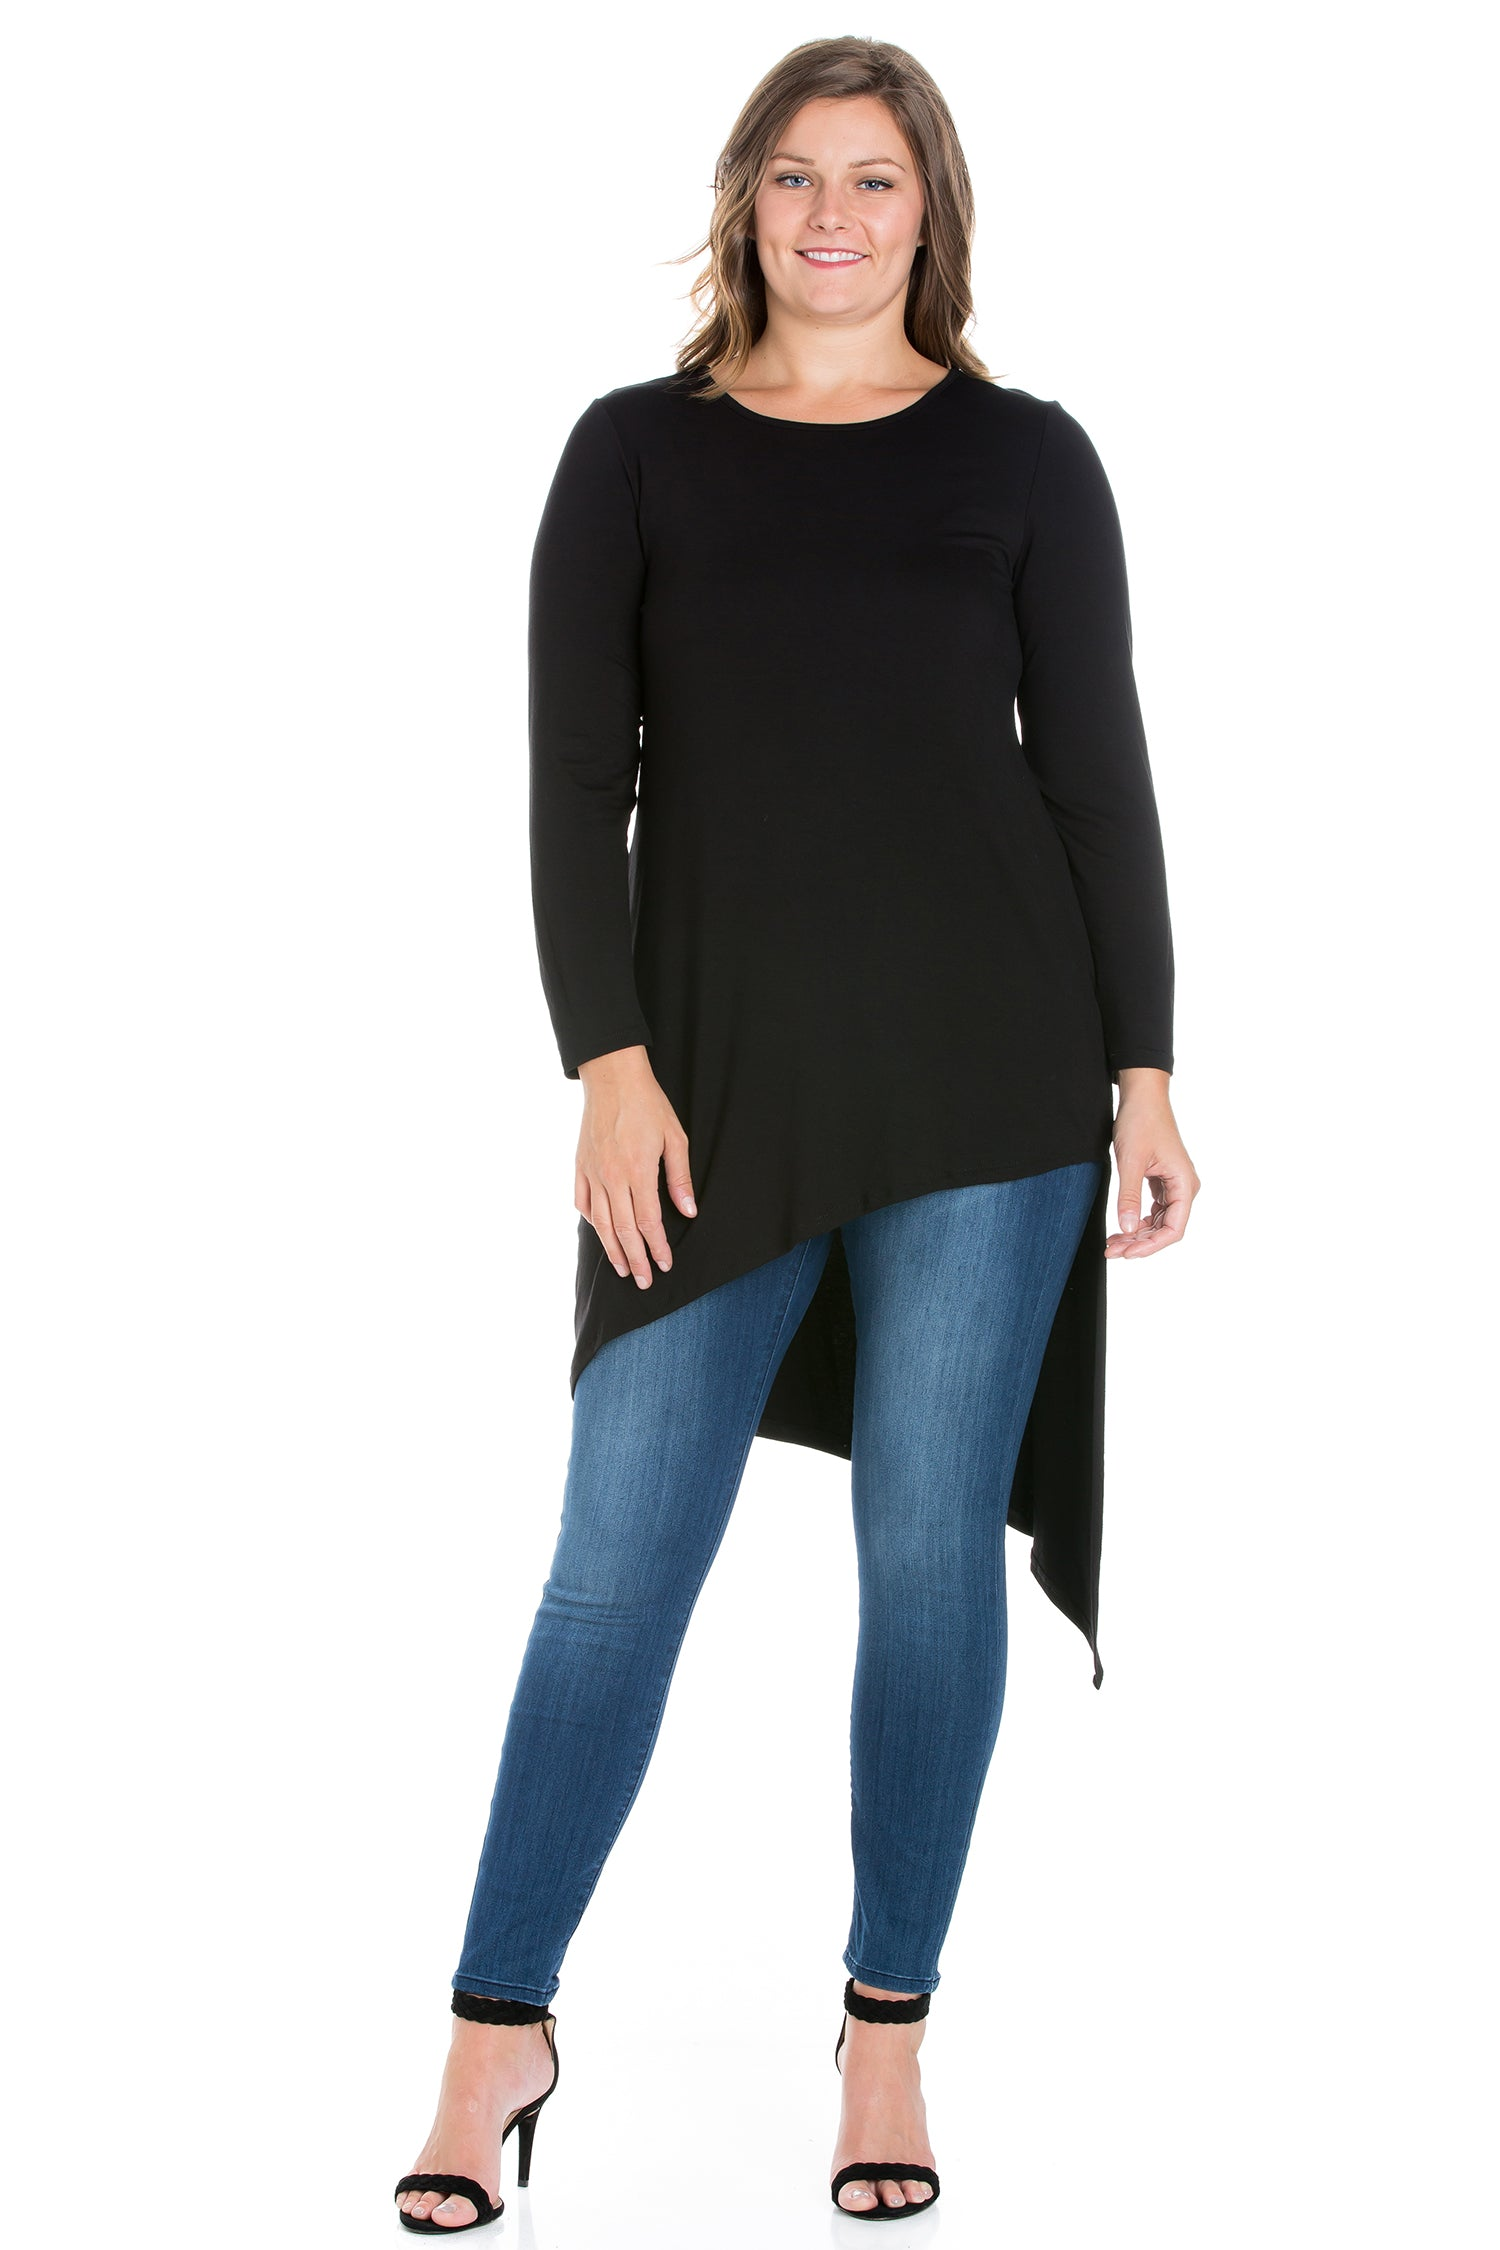 24seven Comfort Apparel Long Sleeve Knee Length Asymmetrical Plus Size Tunic Top-TOPS-24Seven Comfort Apparel-BLACK-1X-24/7 Comfort Apparel